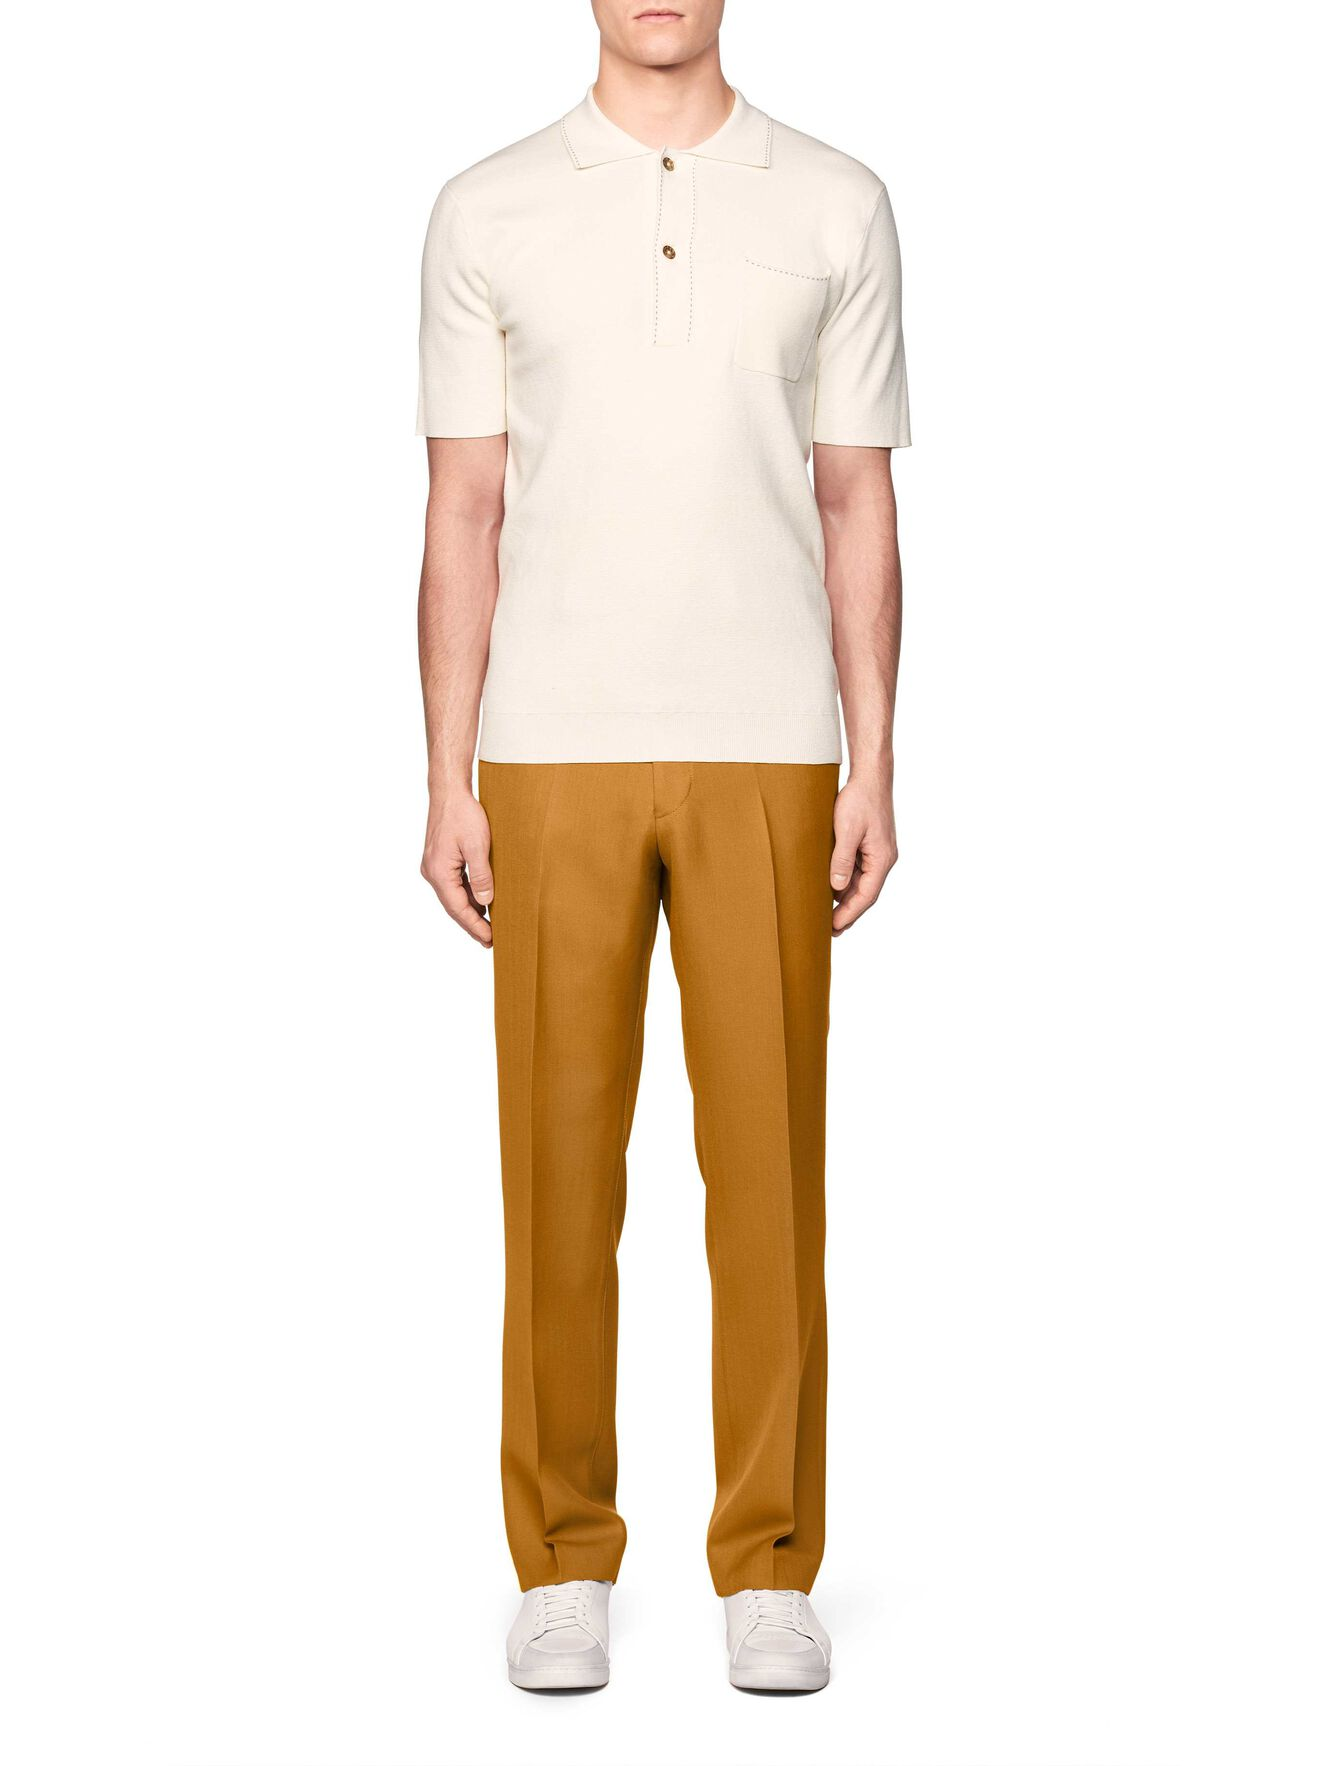 Howman Polo Shirt in Soft White from Tiger of Sweden